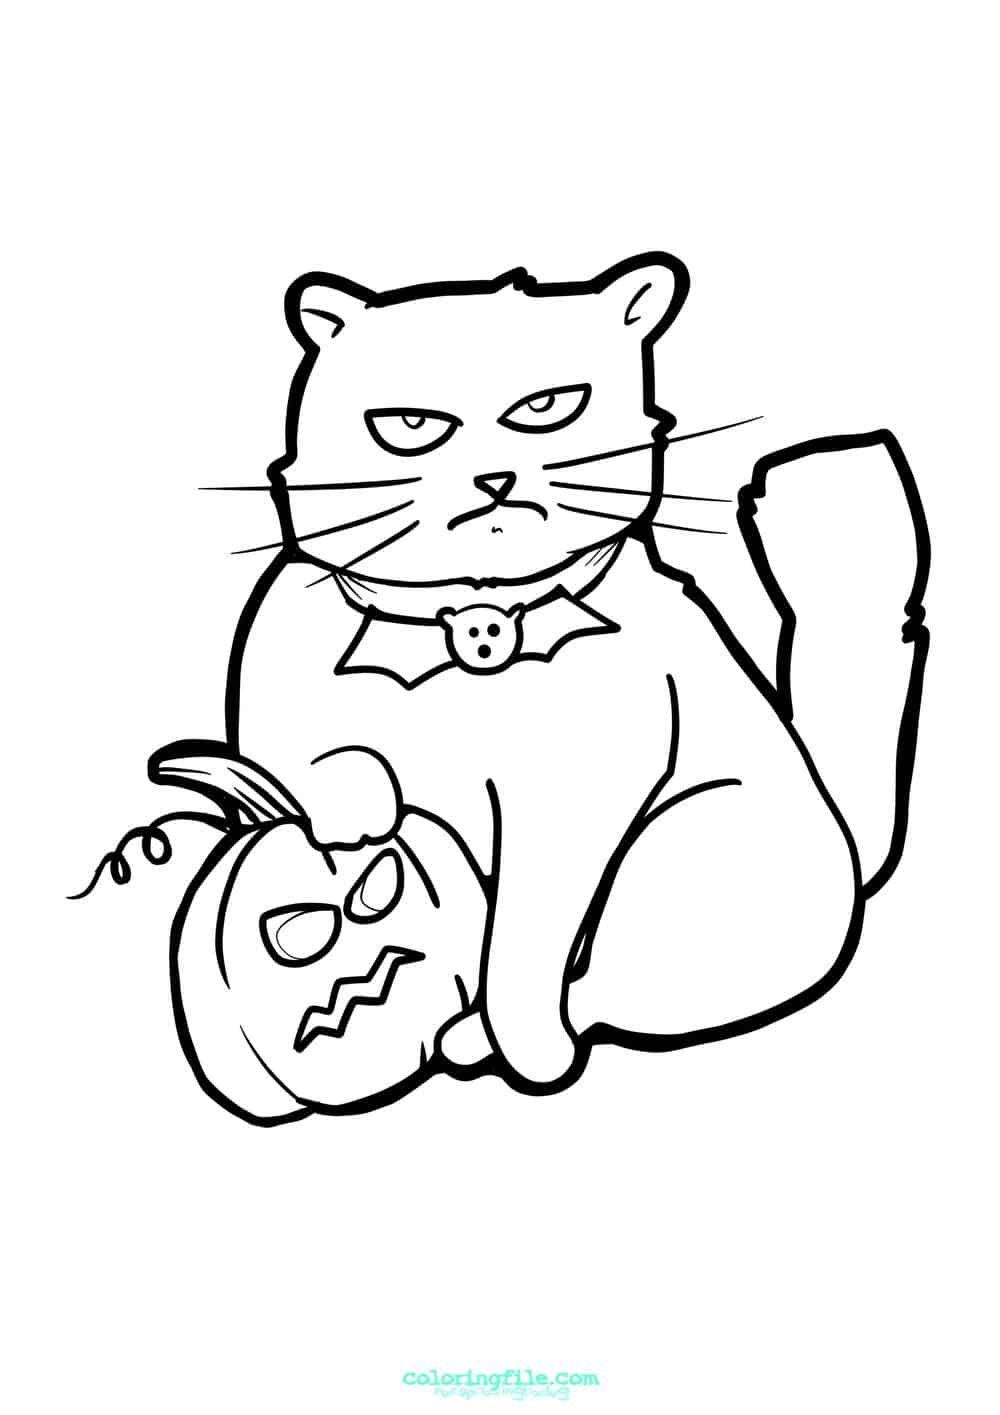 Halloween Cat On Pumpkin Coloring Pages From 100 Halloween